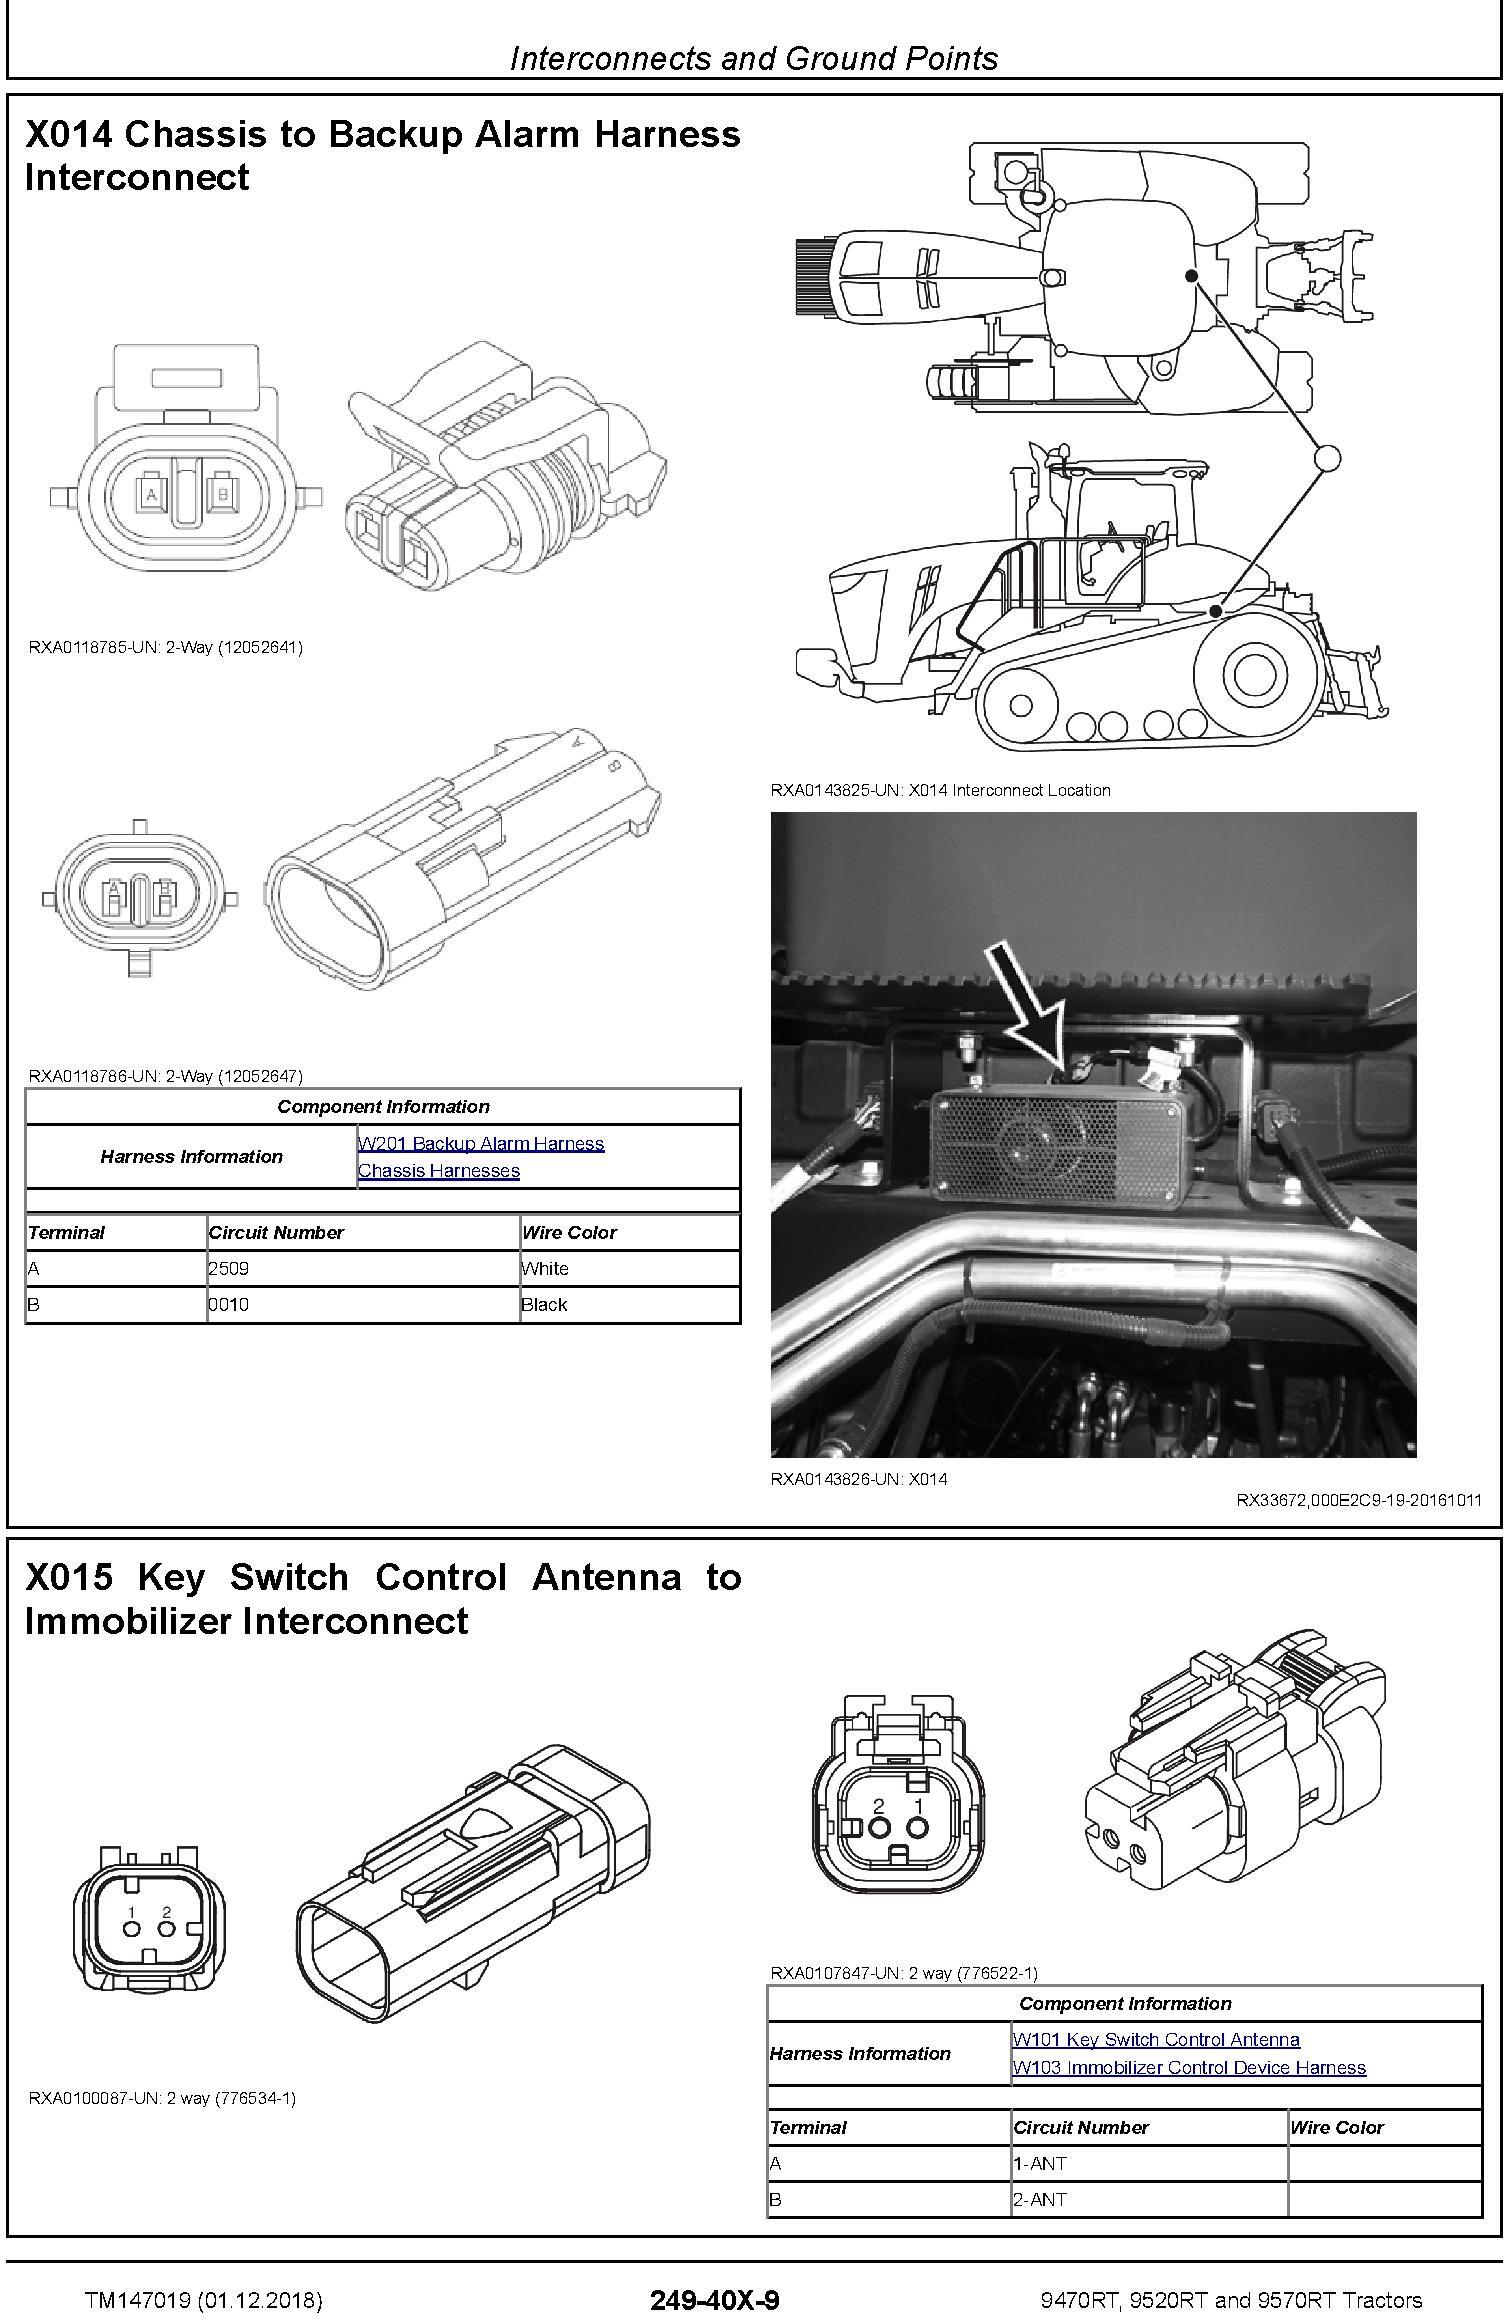 John Deere 9470RT, 9520RT and 9570RT Tractors (SN. 917000-) Diagnostic Technical Manual (TM147019) - 1